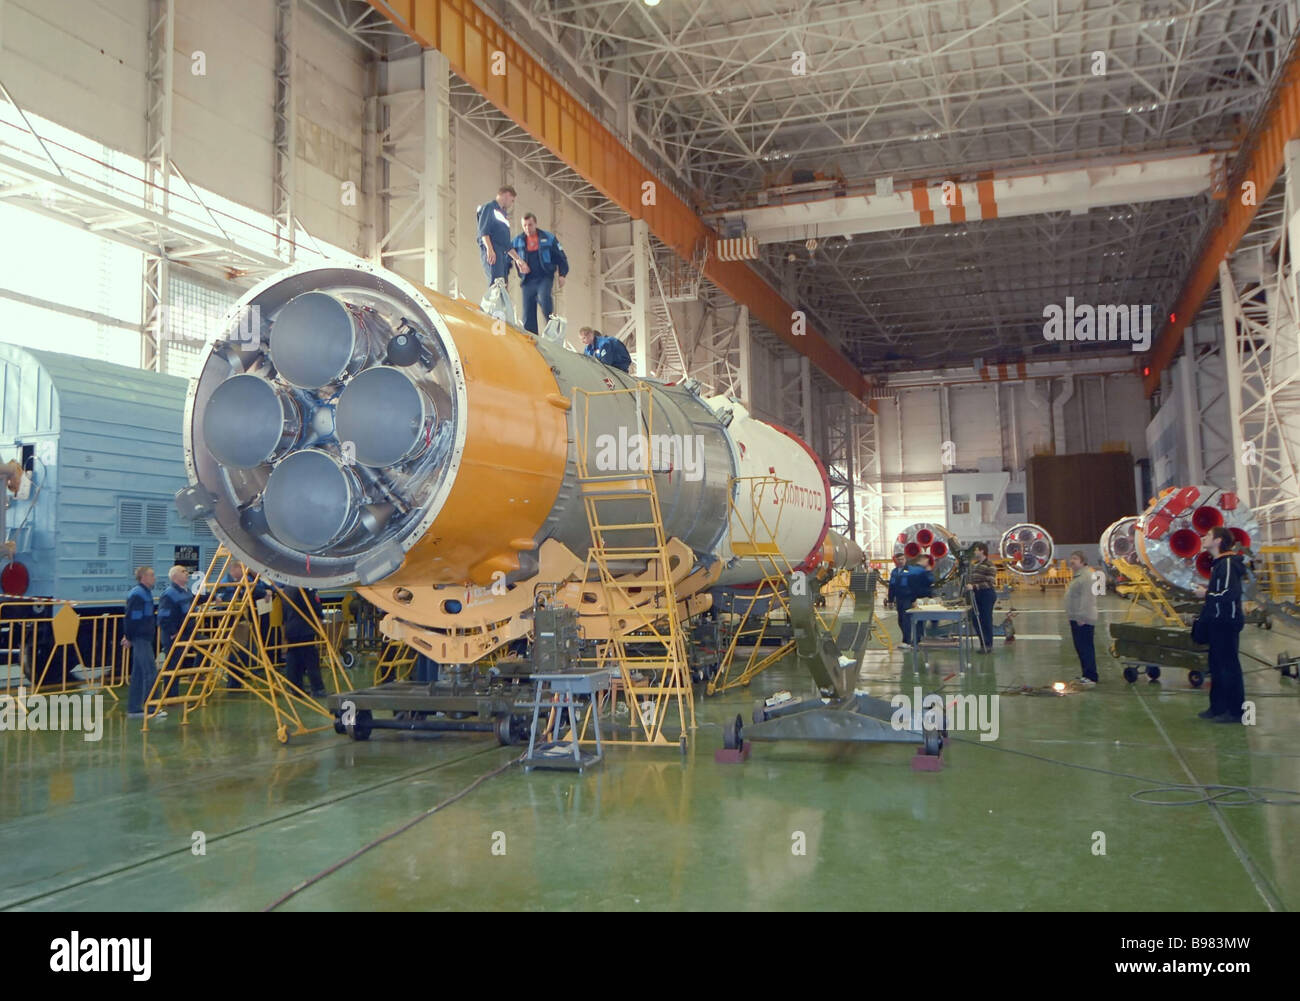 The orbiter processing facility of area 112 at the Baikonur Cosmodrome where the Soyuz U rocket is being assembled - Stock Image